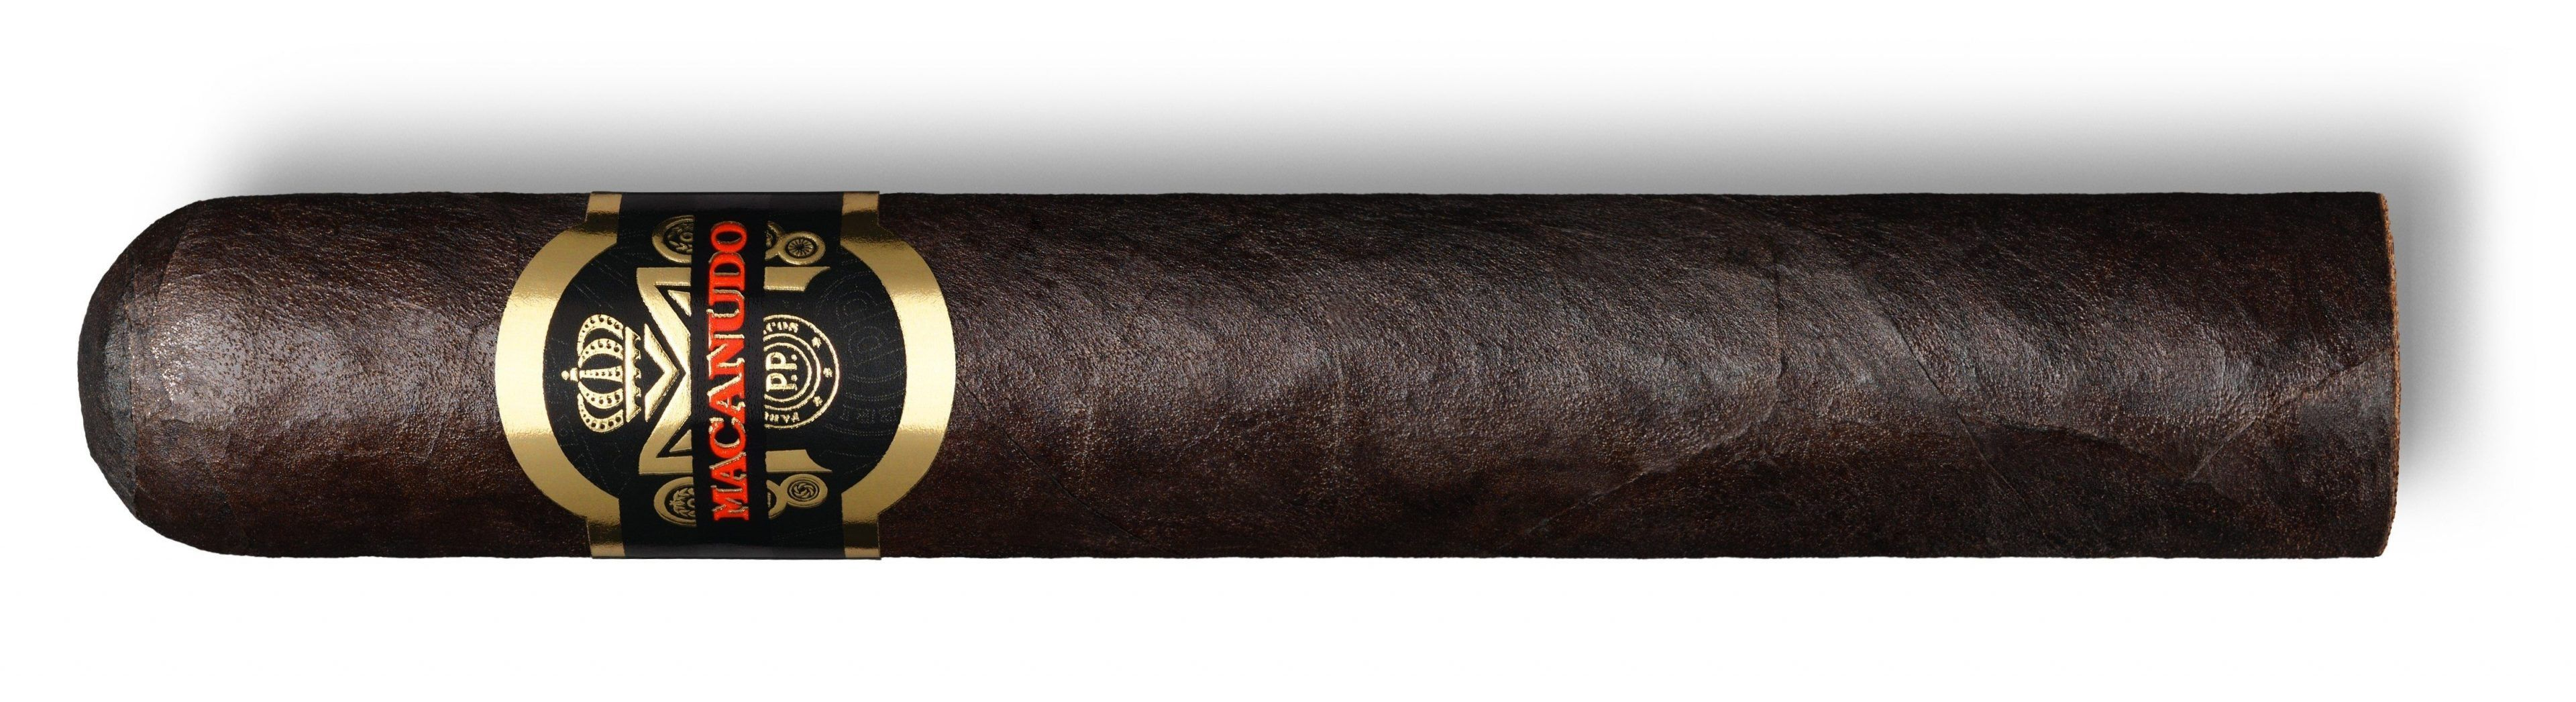 Luxury Products - The 5 Most Appreciated Cigars | Wines